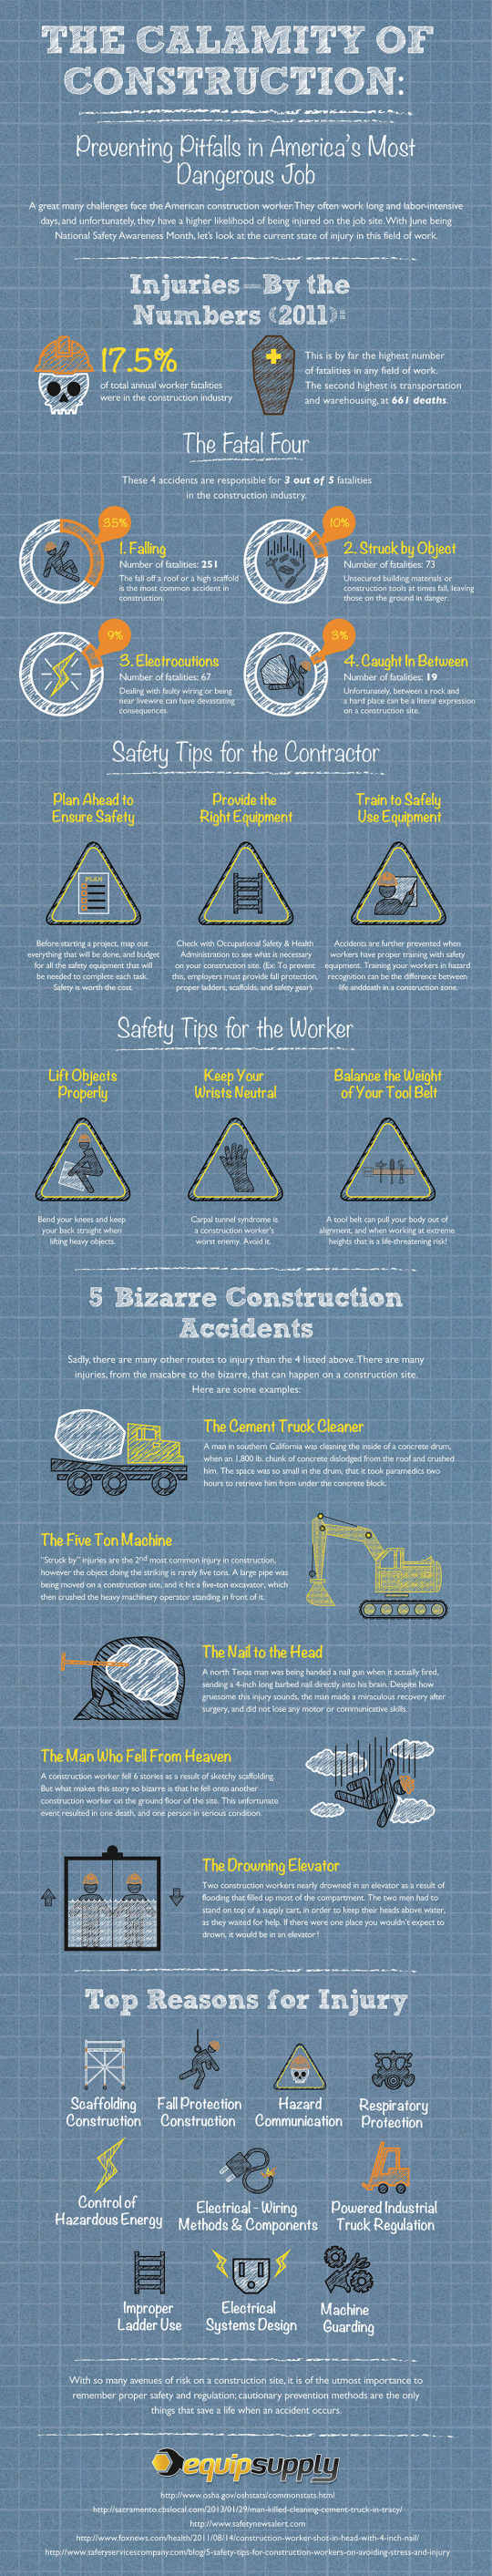 The Calamities of Construction